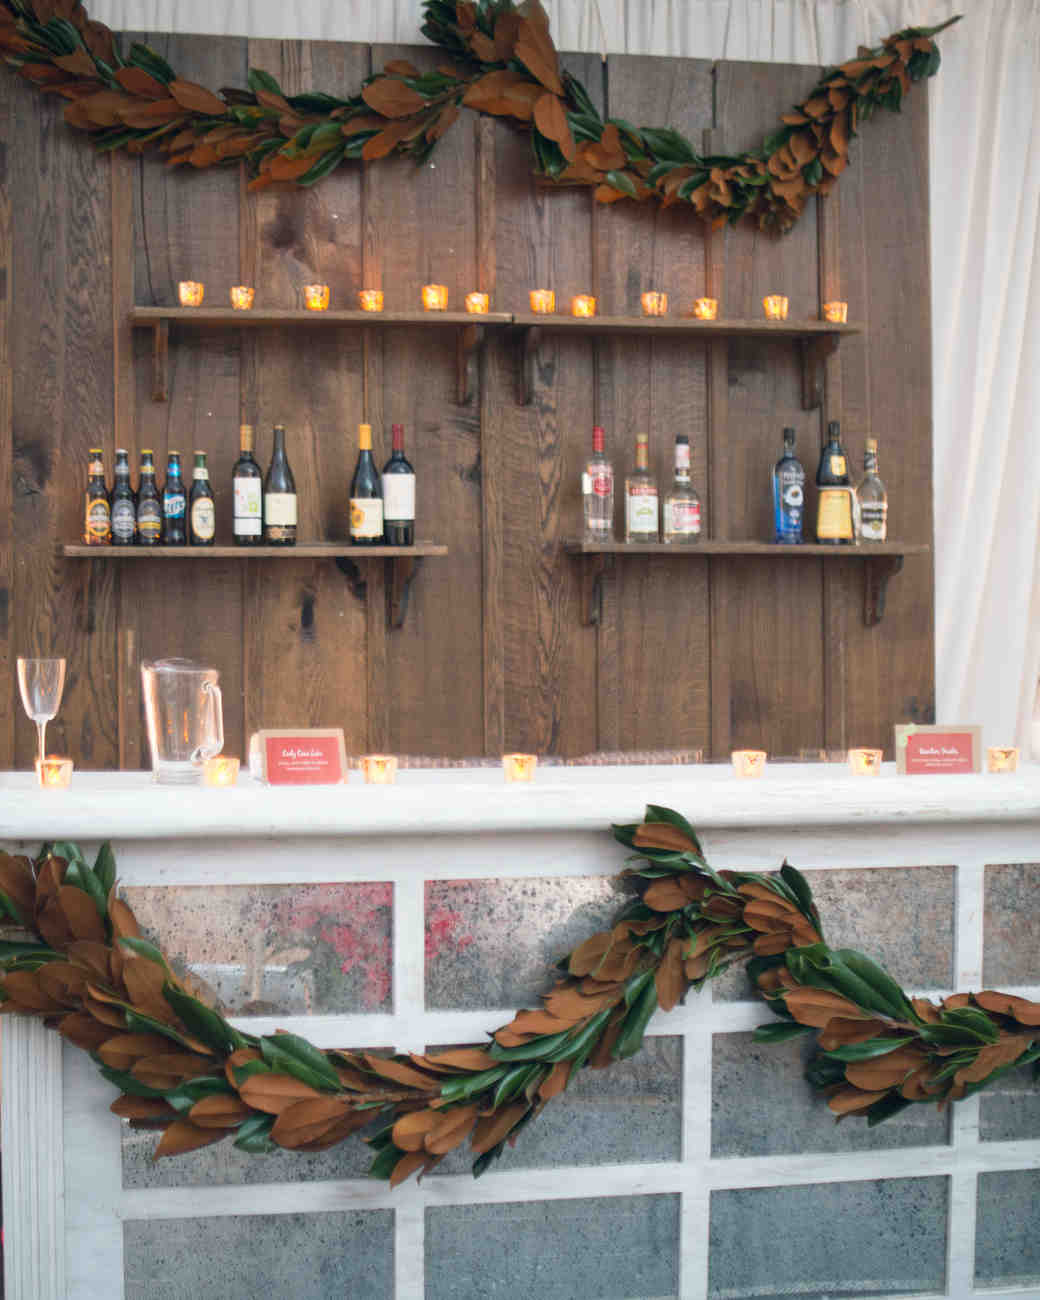 winter-bridal-shower-ideas-garland-on-bar-events-in-the-city-1215.jpg